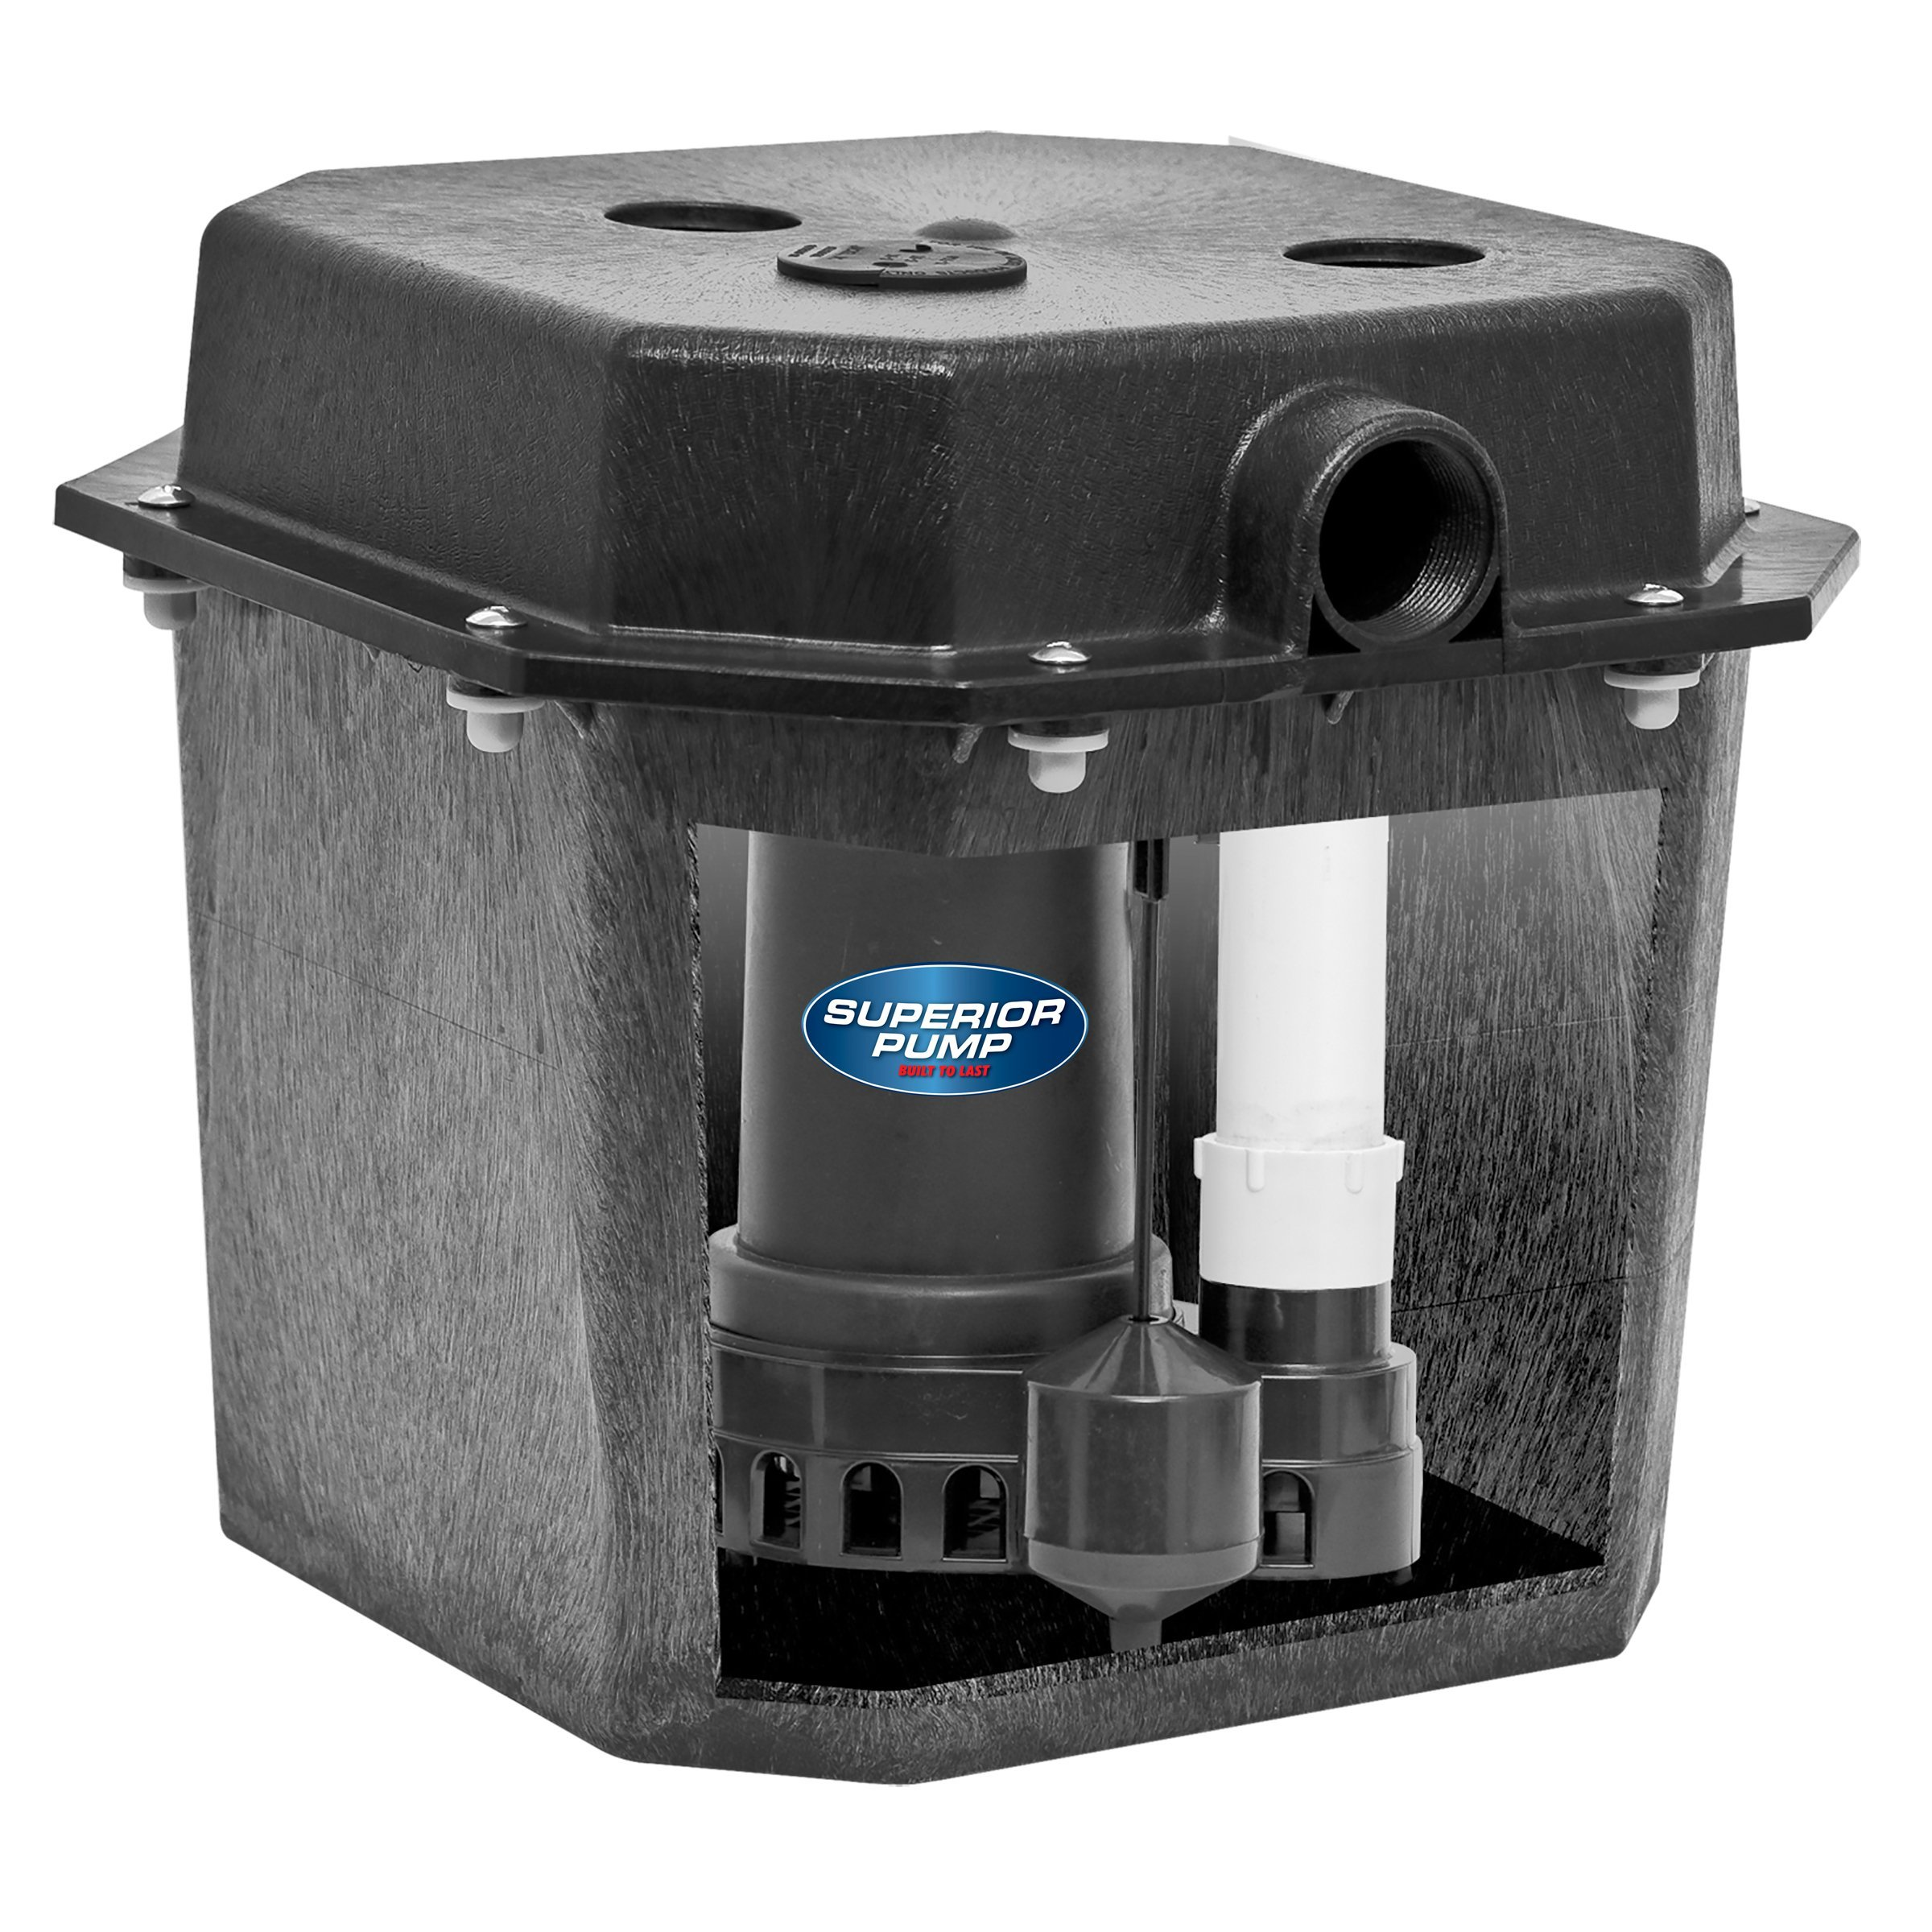 Superior Pump 92072-U remote drain pump kit.  Works great for laundry tubs, washing machines, wet bars and dehumidifiers